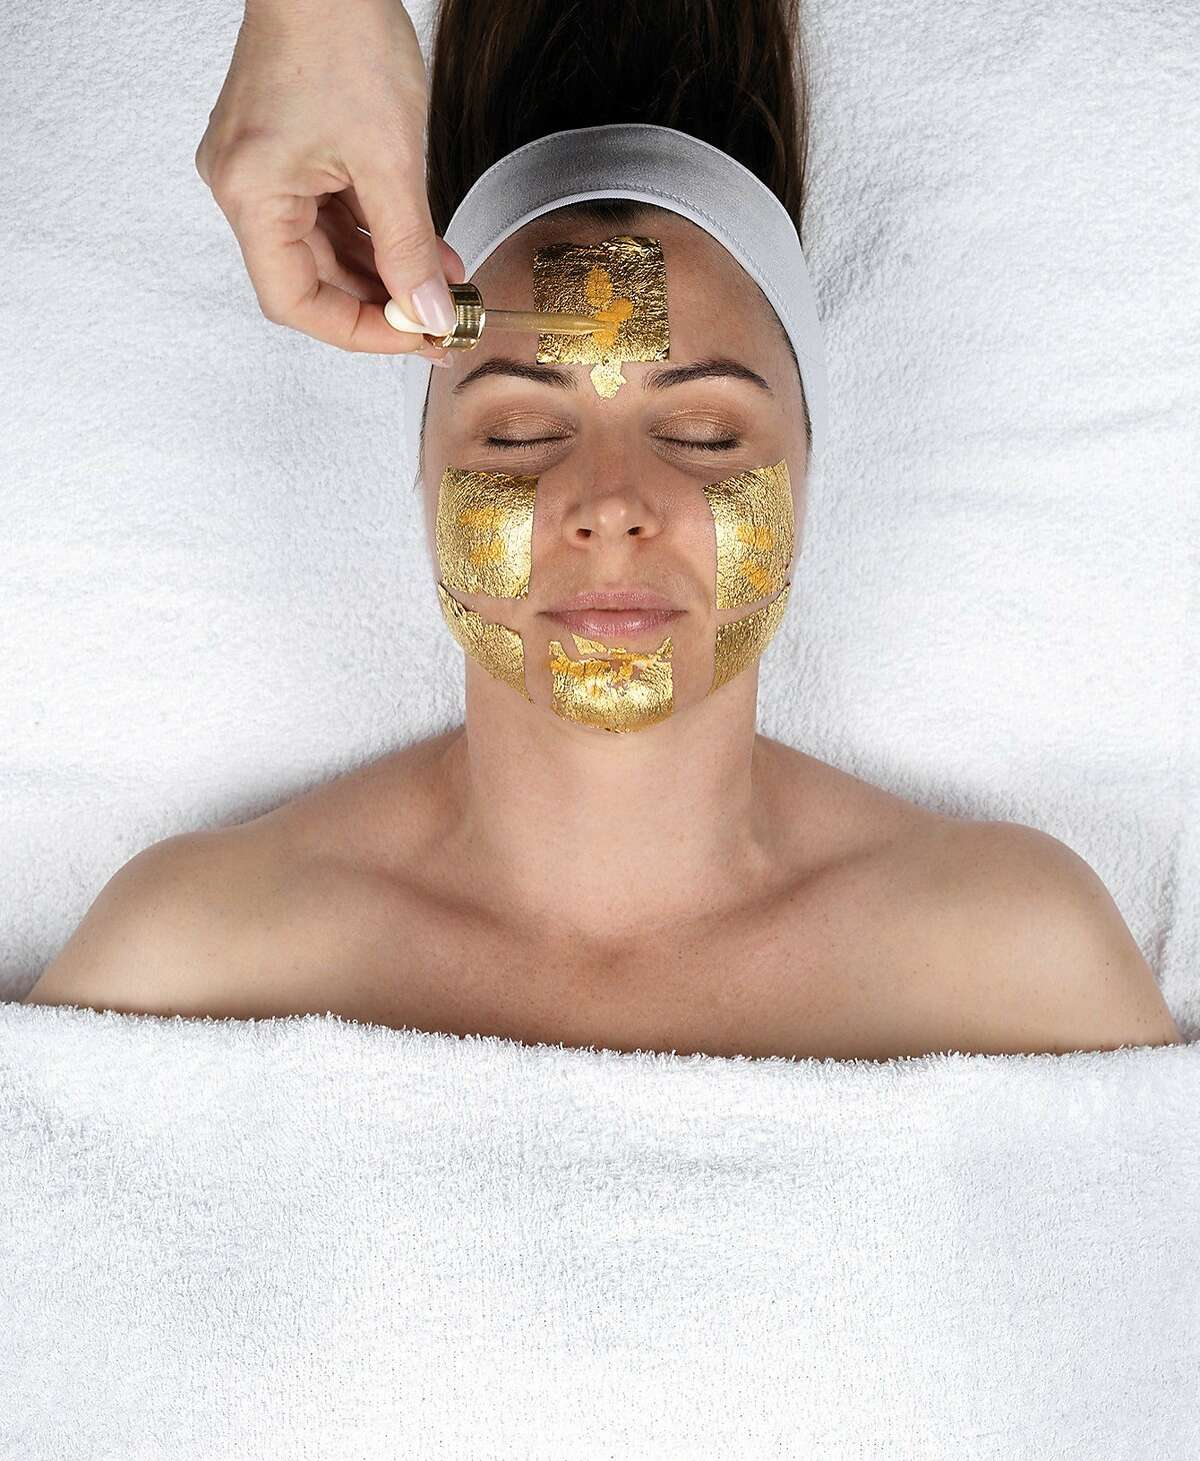 Caviar & Carat Facial with Gold Leaves. Facials start at $135. LaBelle Day Spa, 233 Grant Ave., S.F.